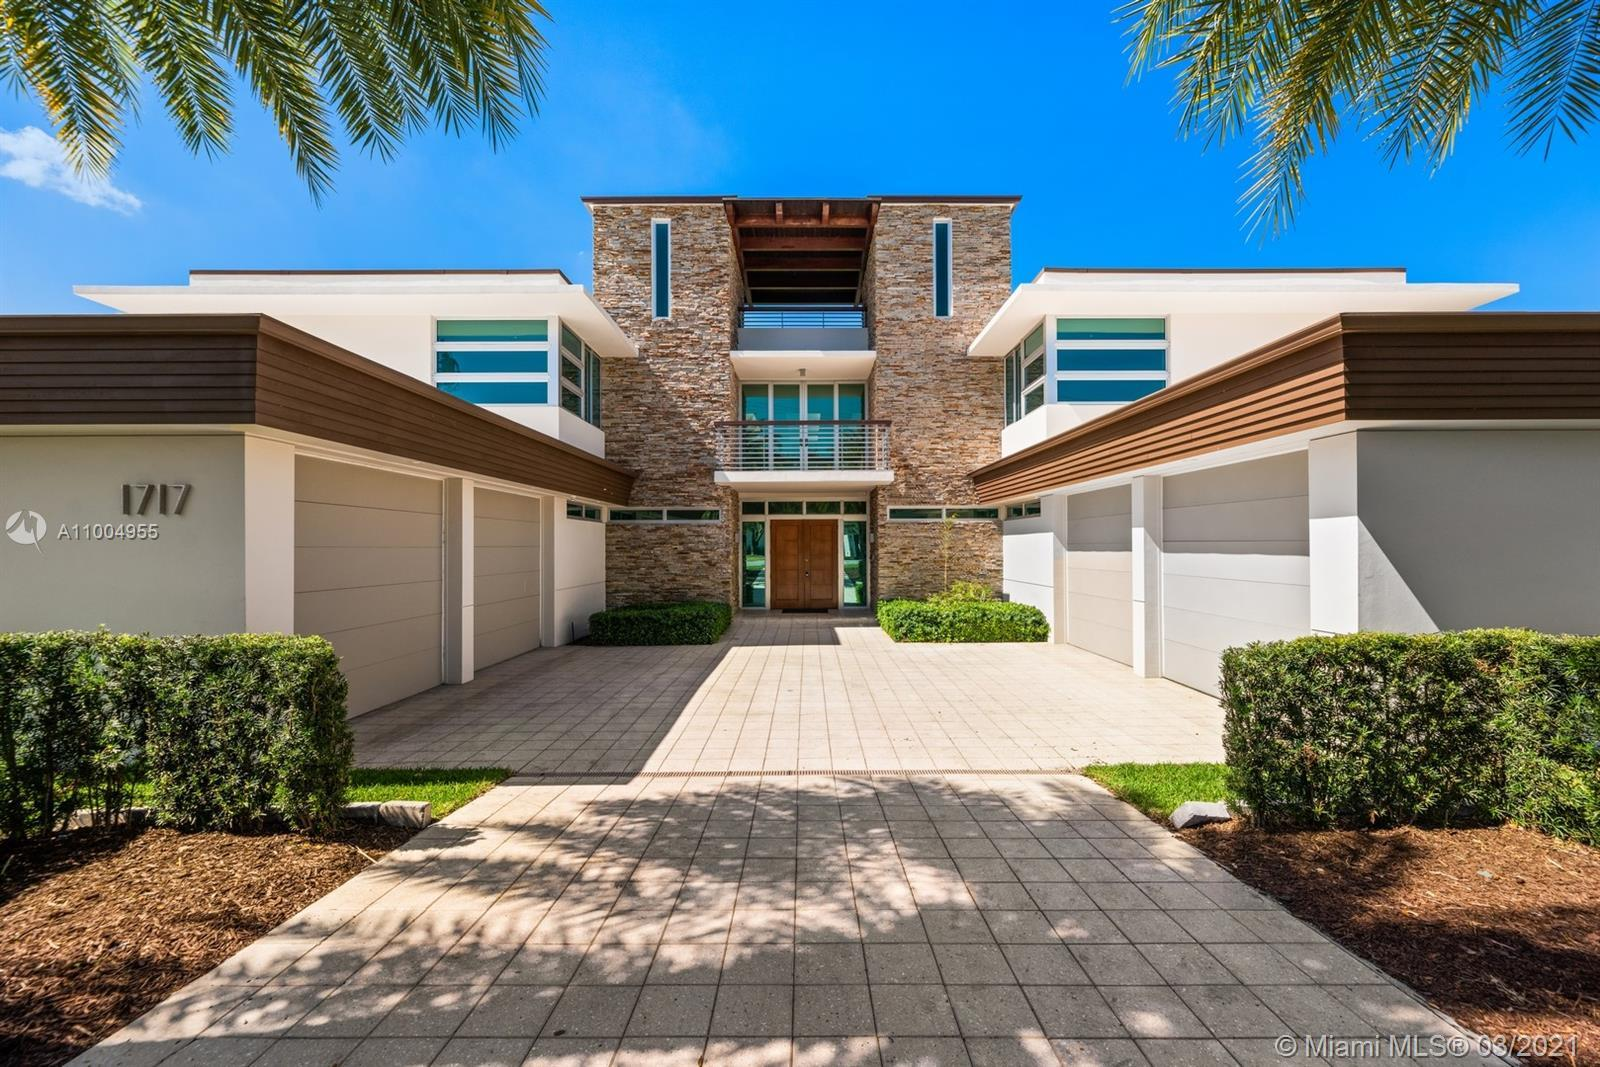 The ultimate in luxurious and modern architecture. This 11,212 square foot expansive and sophisticat